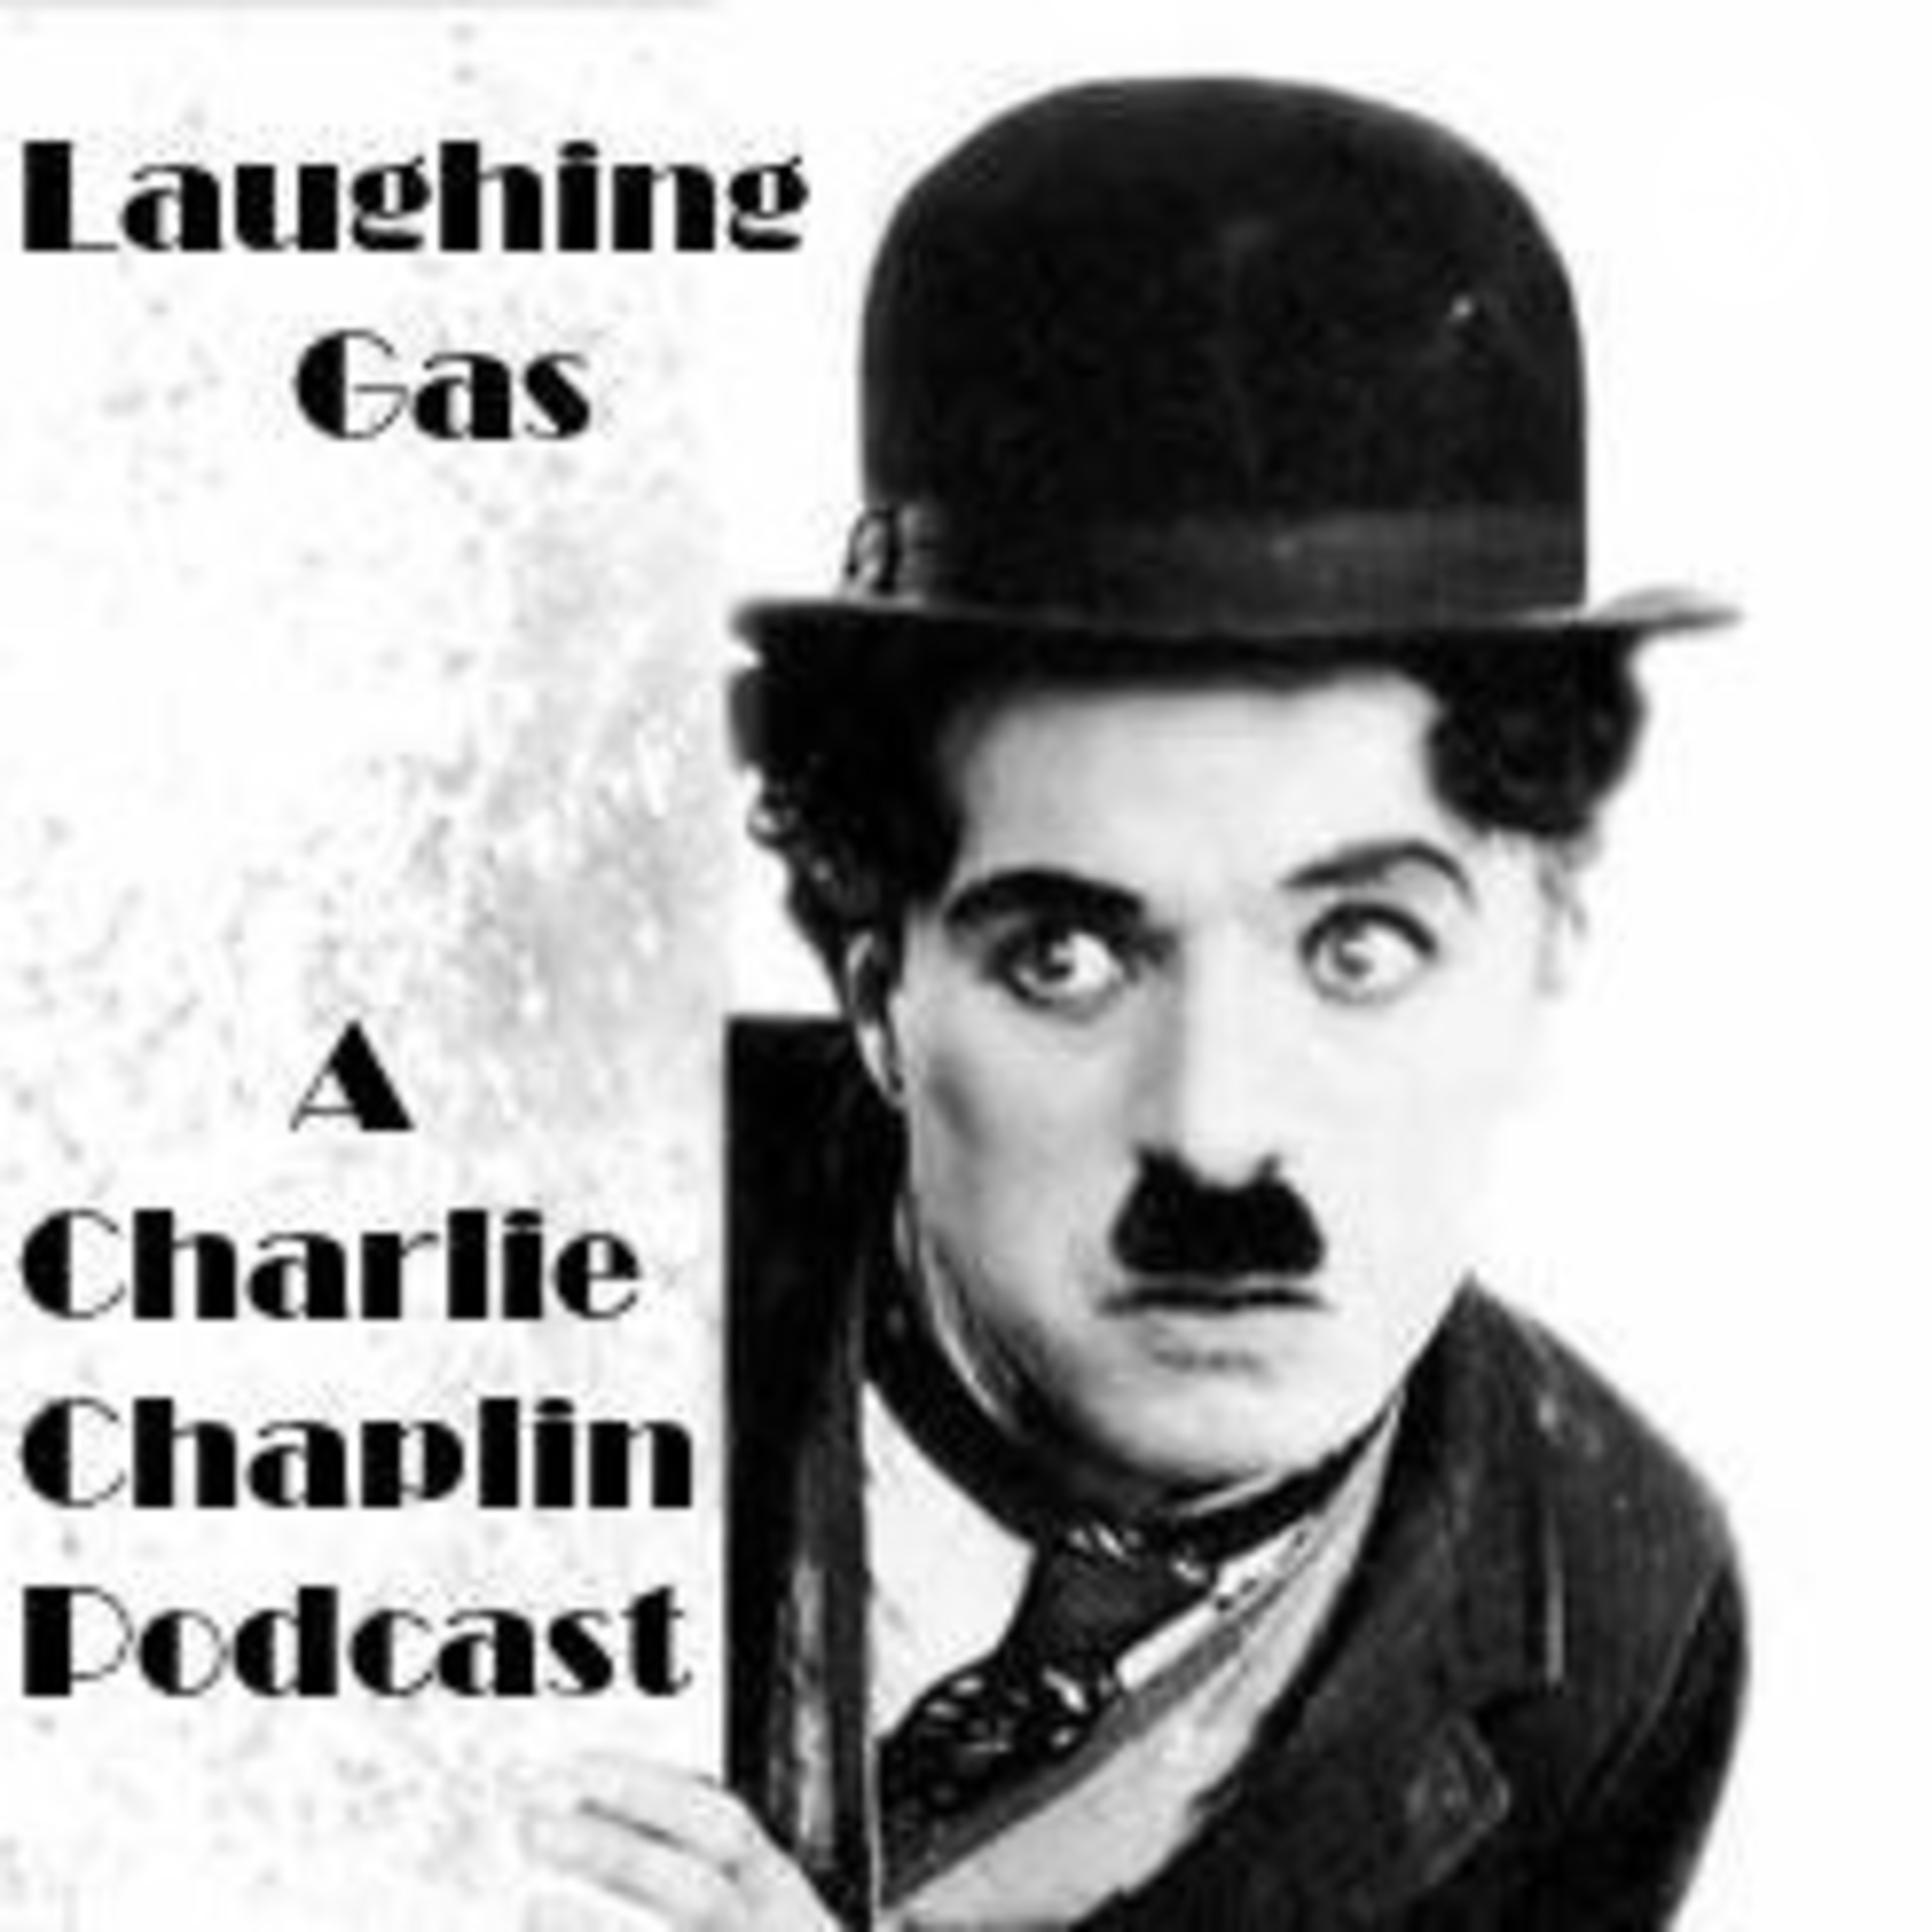 Laughing Gas - A Charlie Chaplin Podcast